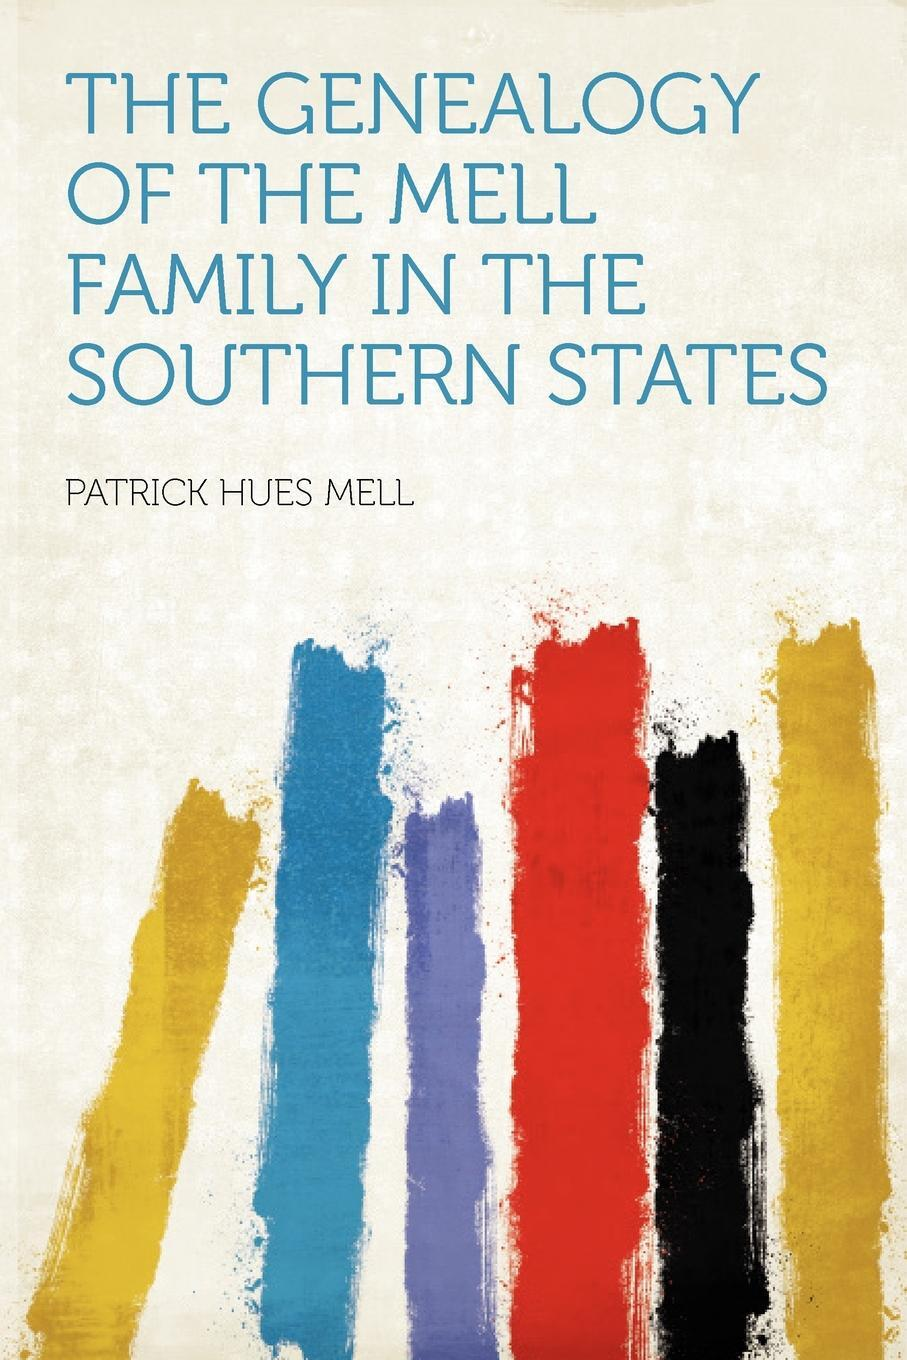 The Genealogy of the Mell Family in the Southern States.